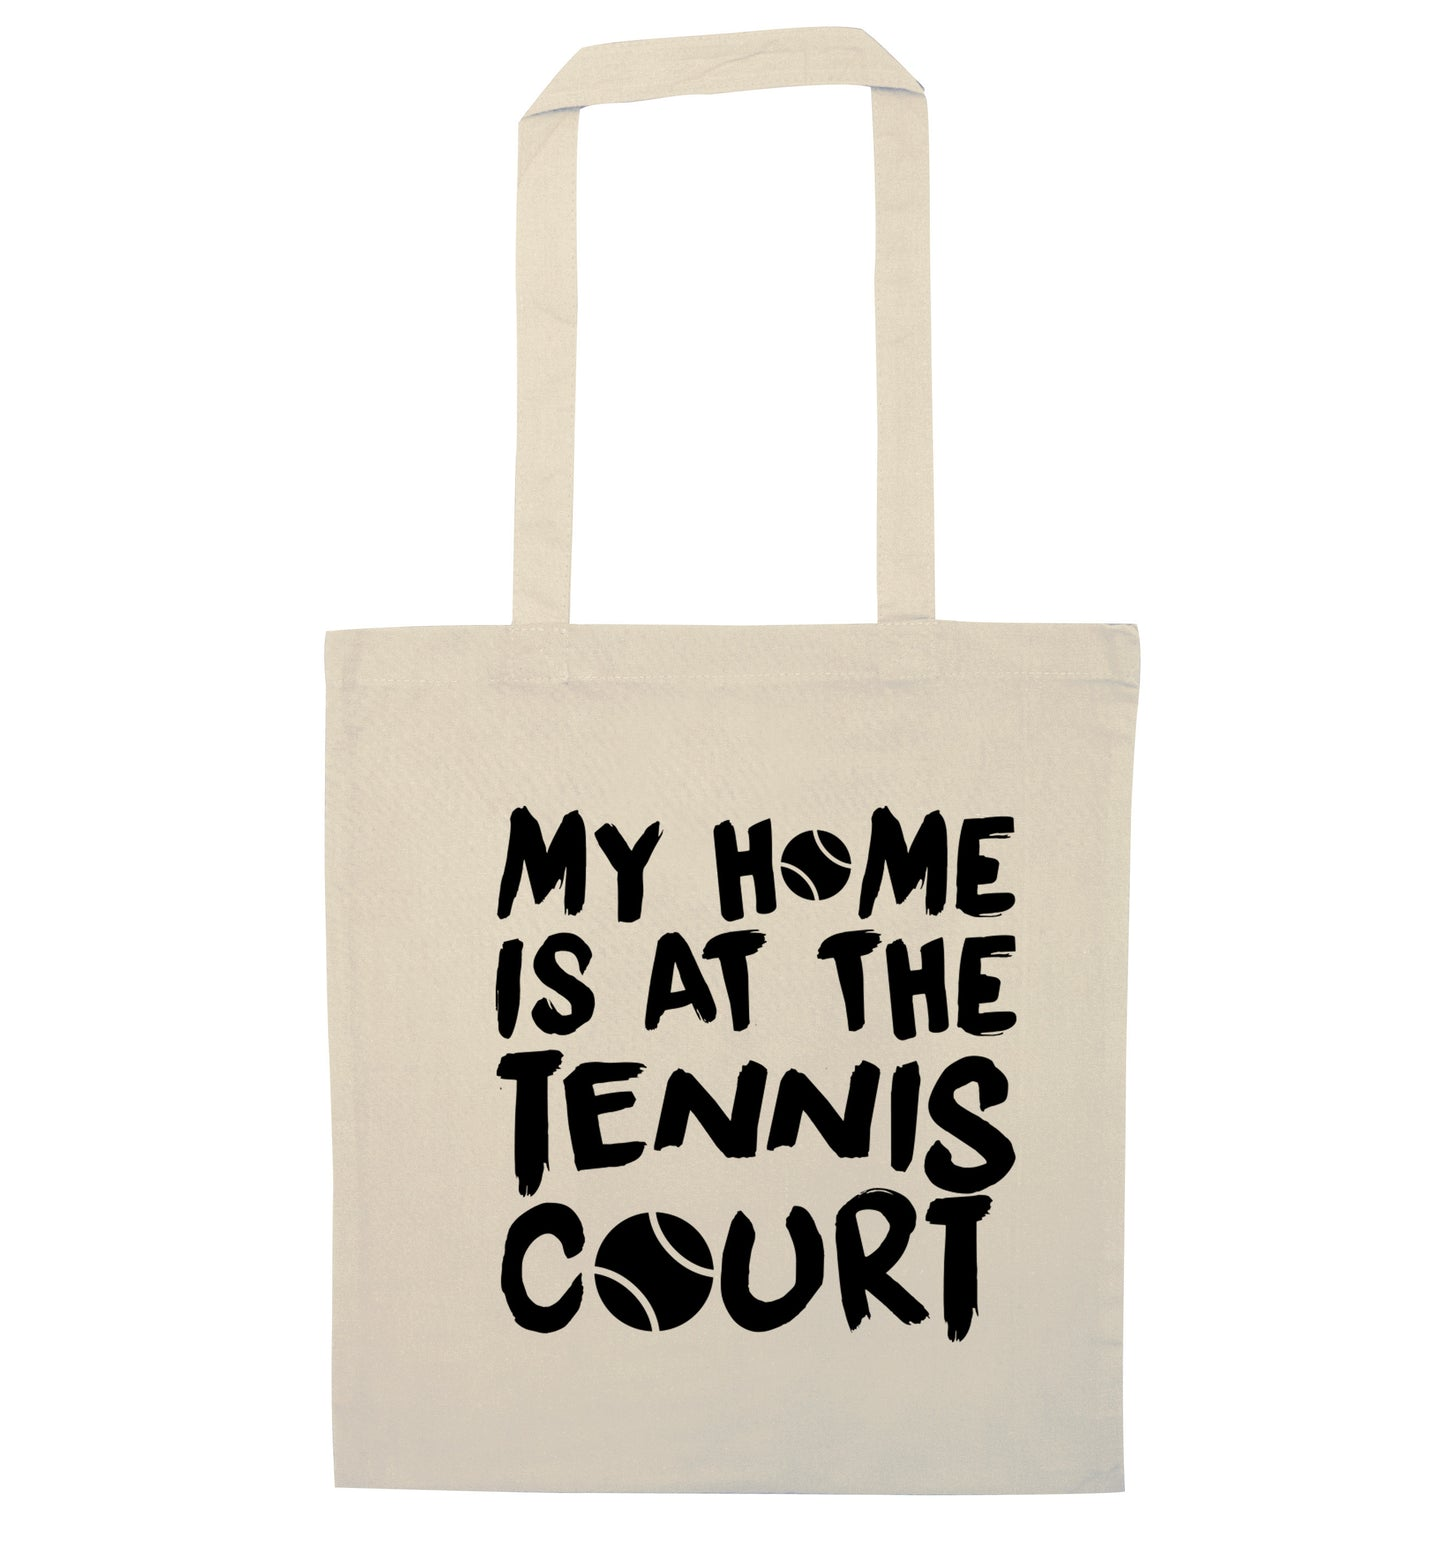 My home is at the tennis court natural tote bag